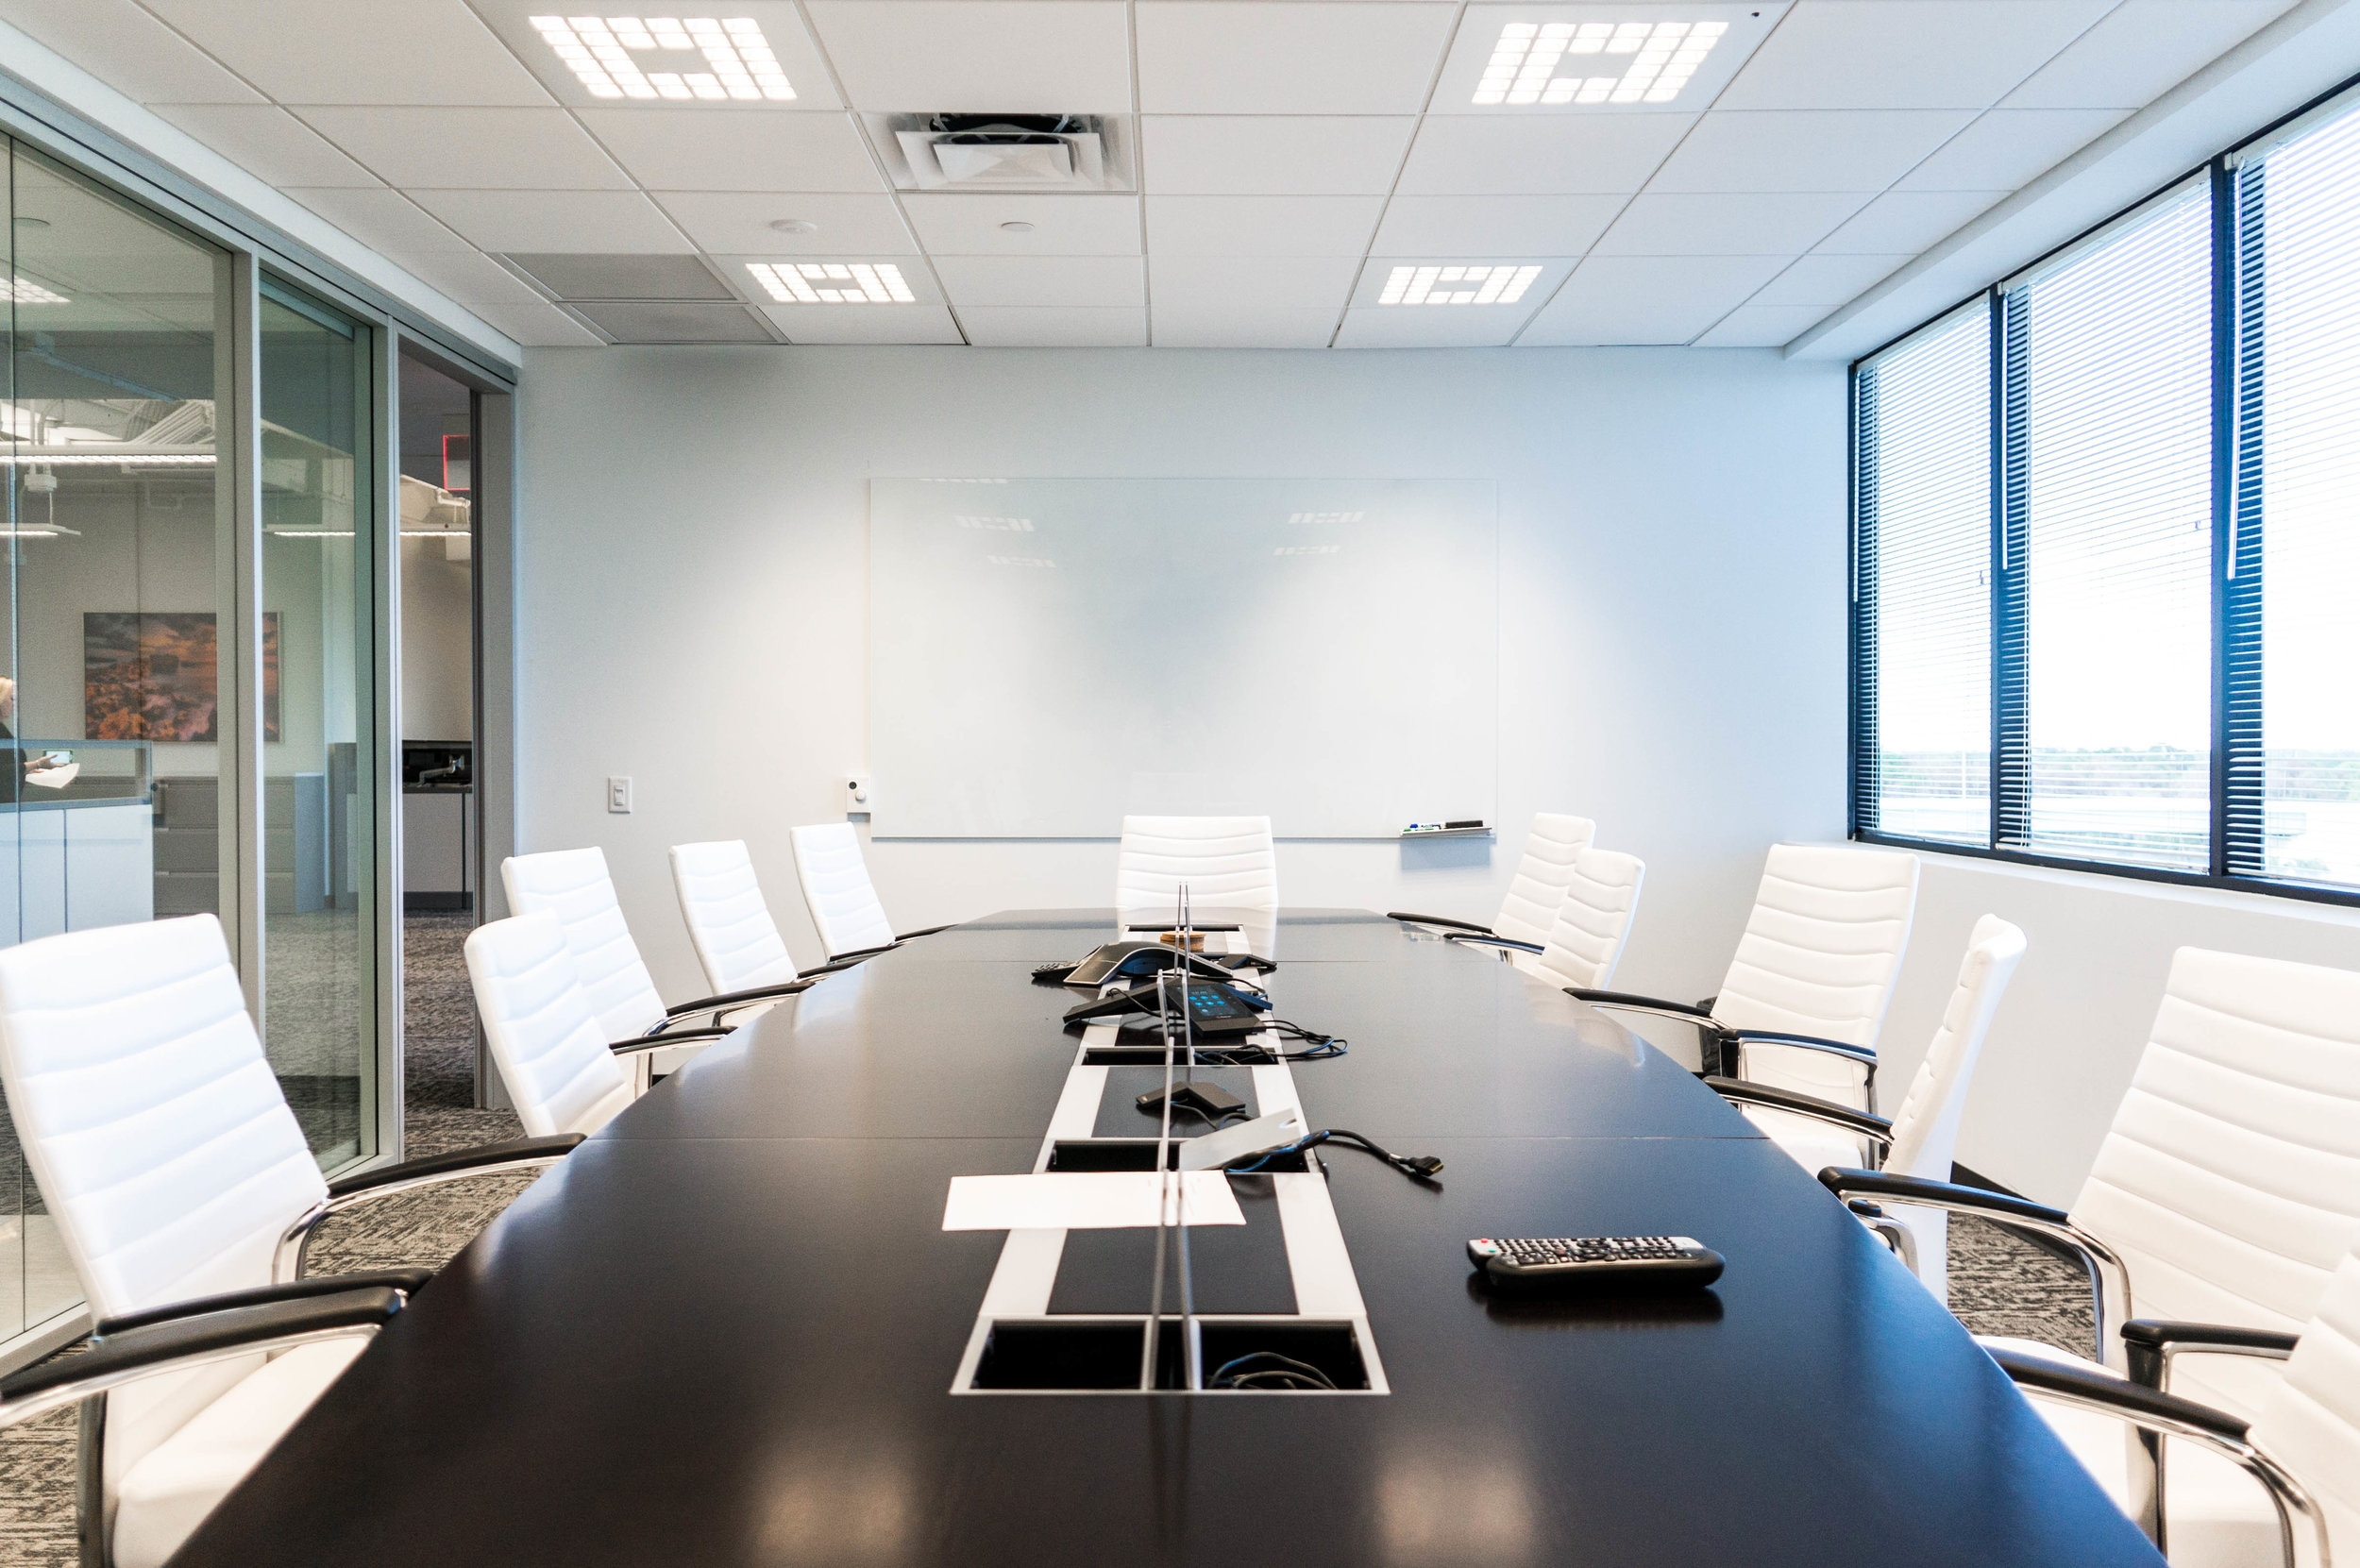 Located in Palm Beach Gardens, the new regional office for the global engineering firm, Golder Associates is where birse/thomas Architects, selected the Mirel LED fixture from Zumtobel, both suspended as well as the 2x2 layin version.